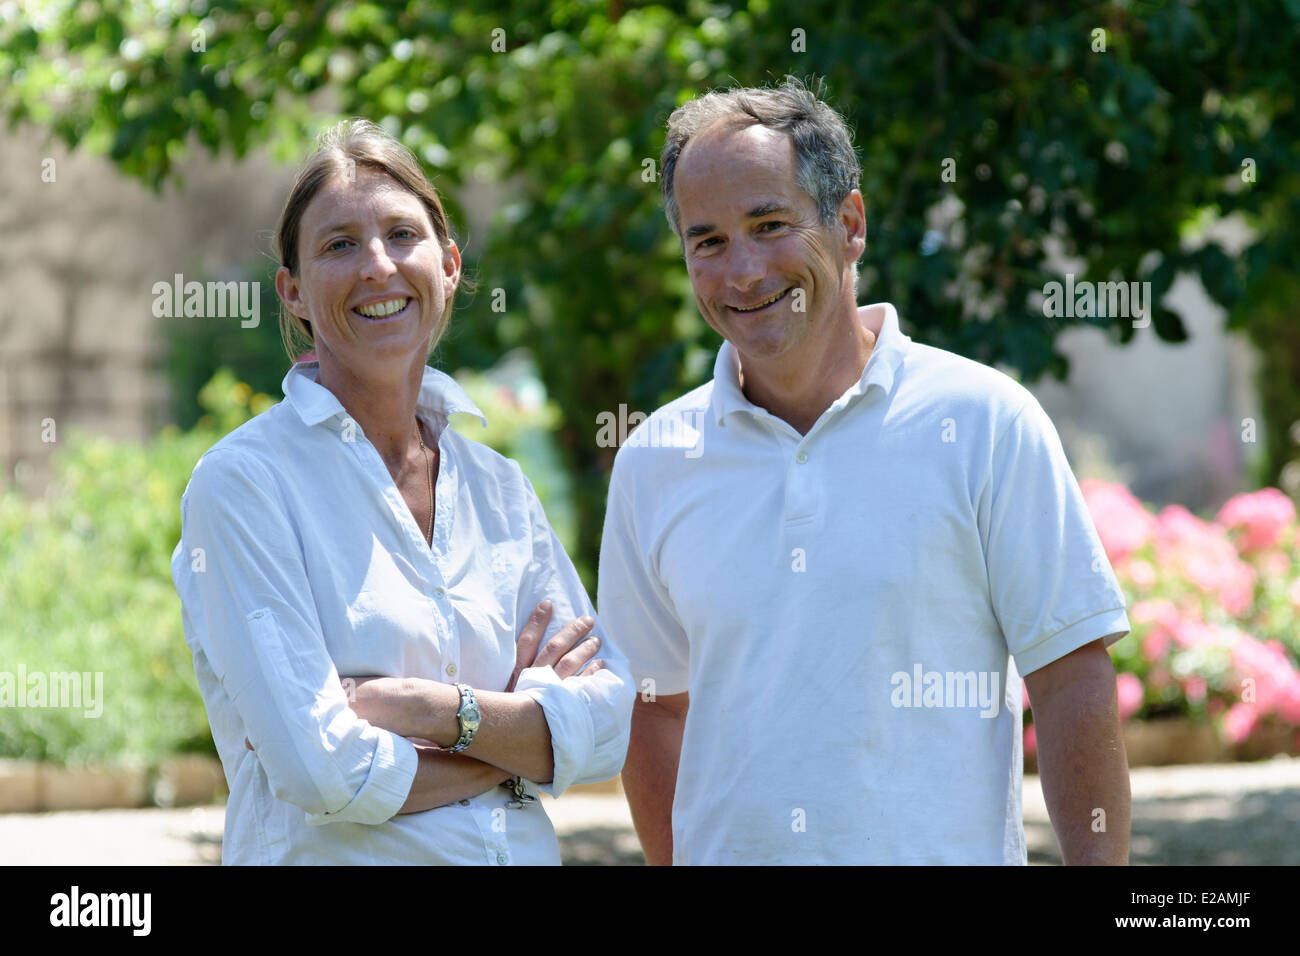 France, Herault, Saint Aunes, Chateau les Mazes domain, owners Dorothee and Bernard Bouchet - Stock Image